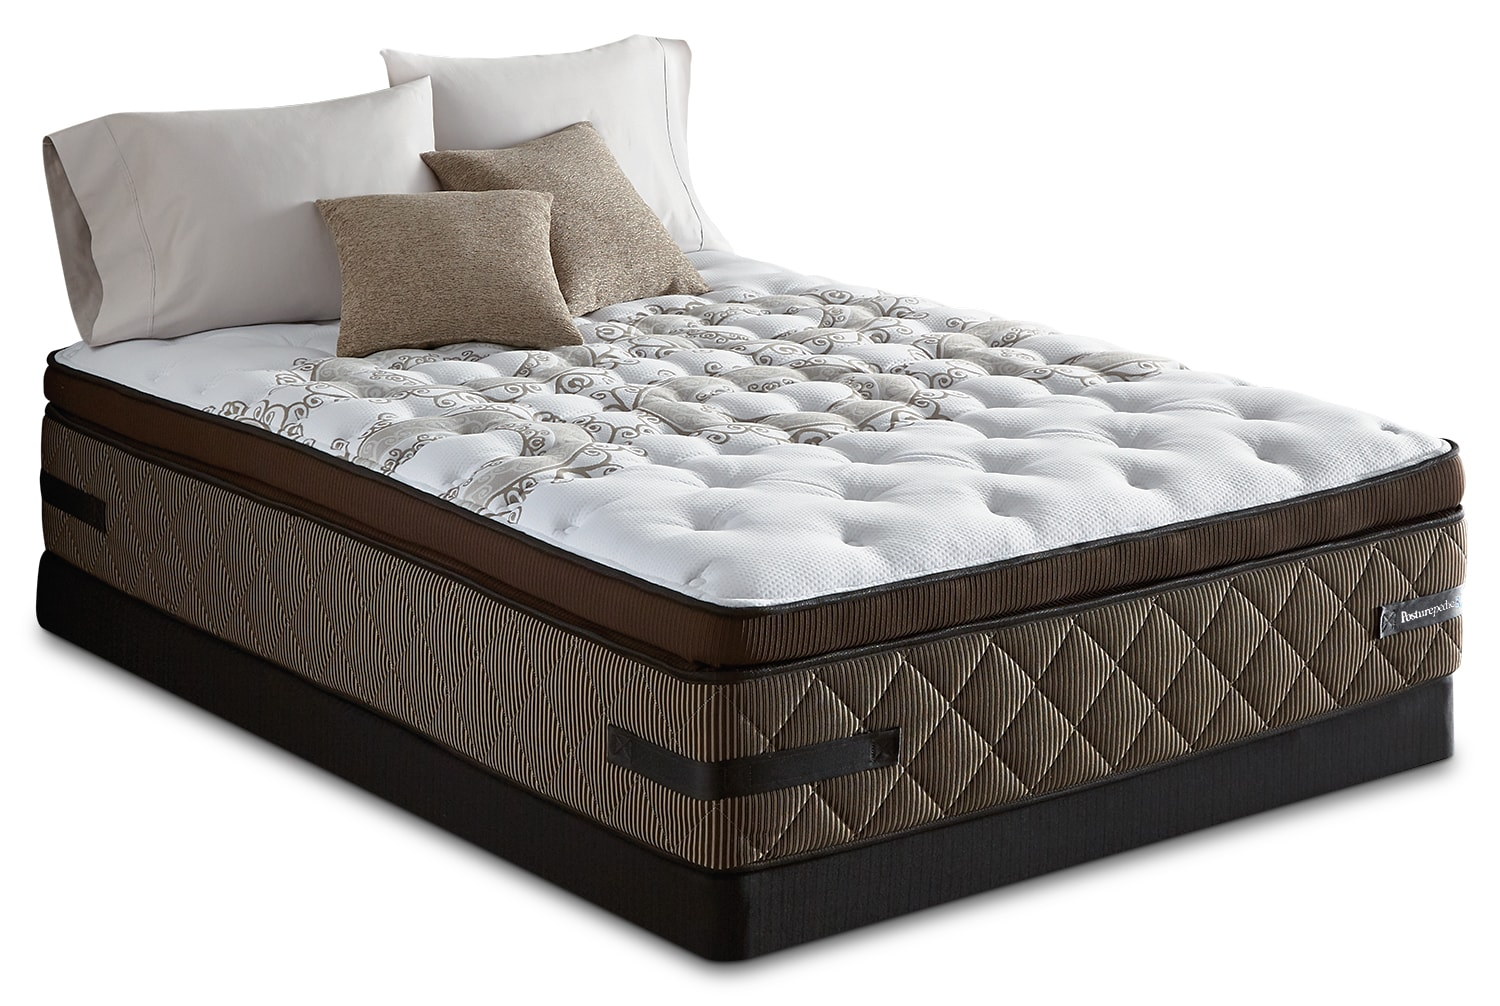 Mattresses and Bedding - Sealy Crown Jewel Sunsera Euro Pillow-Top Plush King Mattress Set